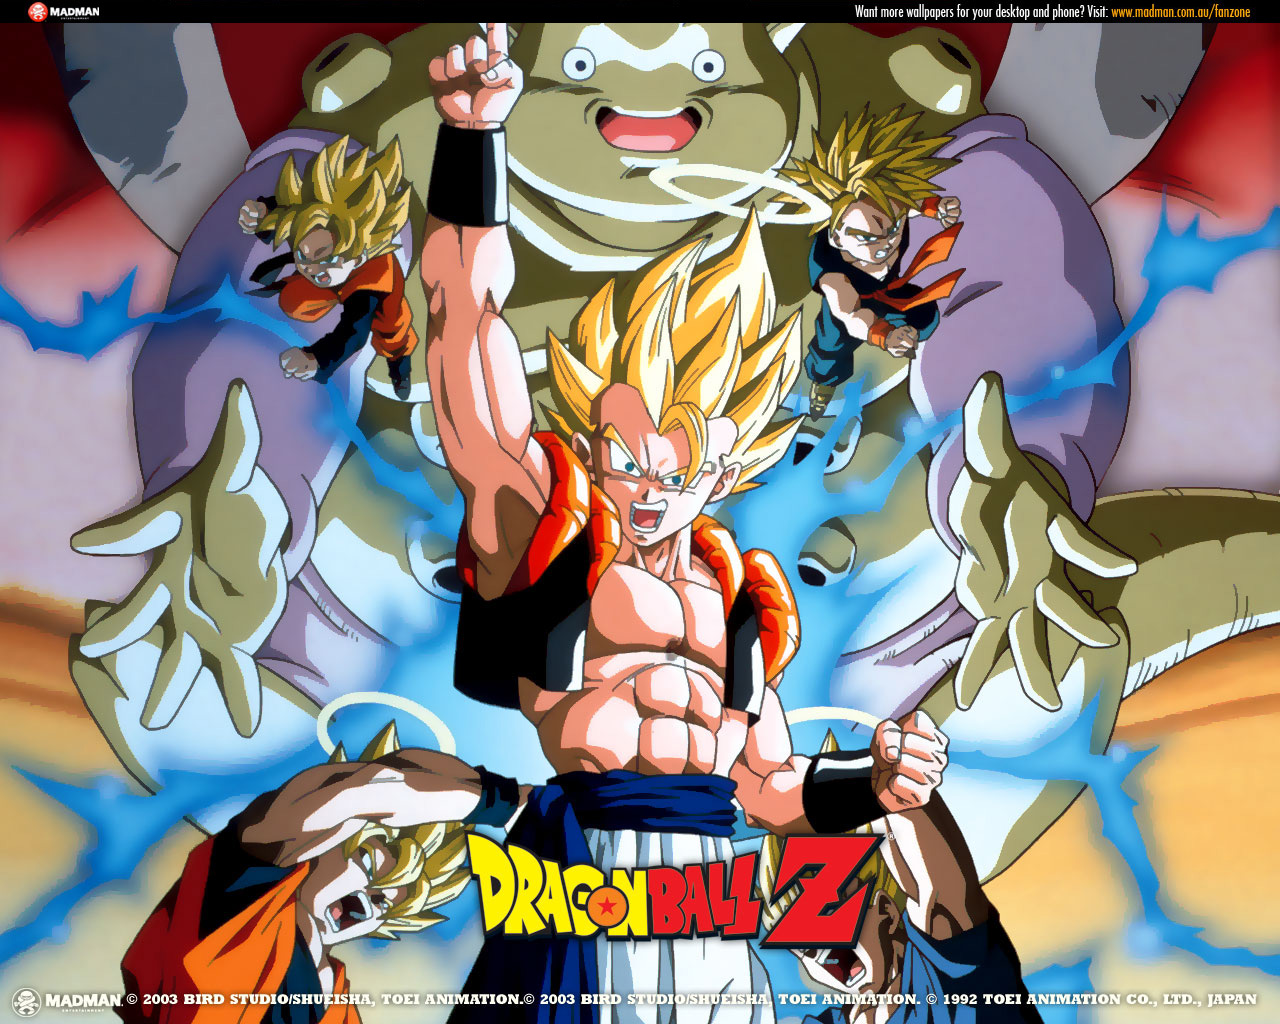 http://2.bp.blogspot.com/-eJhebbVka1c/TwfyLJx1QuI/AAAAAAAAAi4/pLHQlLrY2vk/s1600/Dragon+Ball+Wallpapers+HD+1.jpg